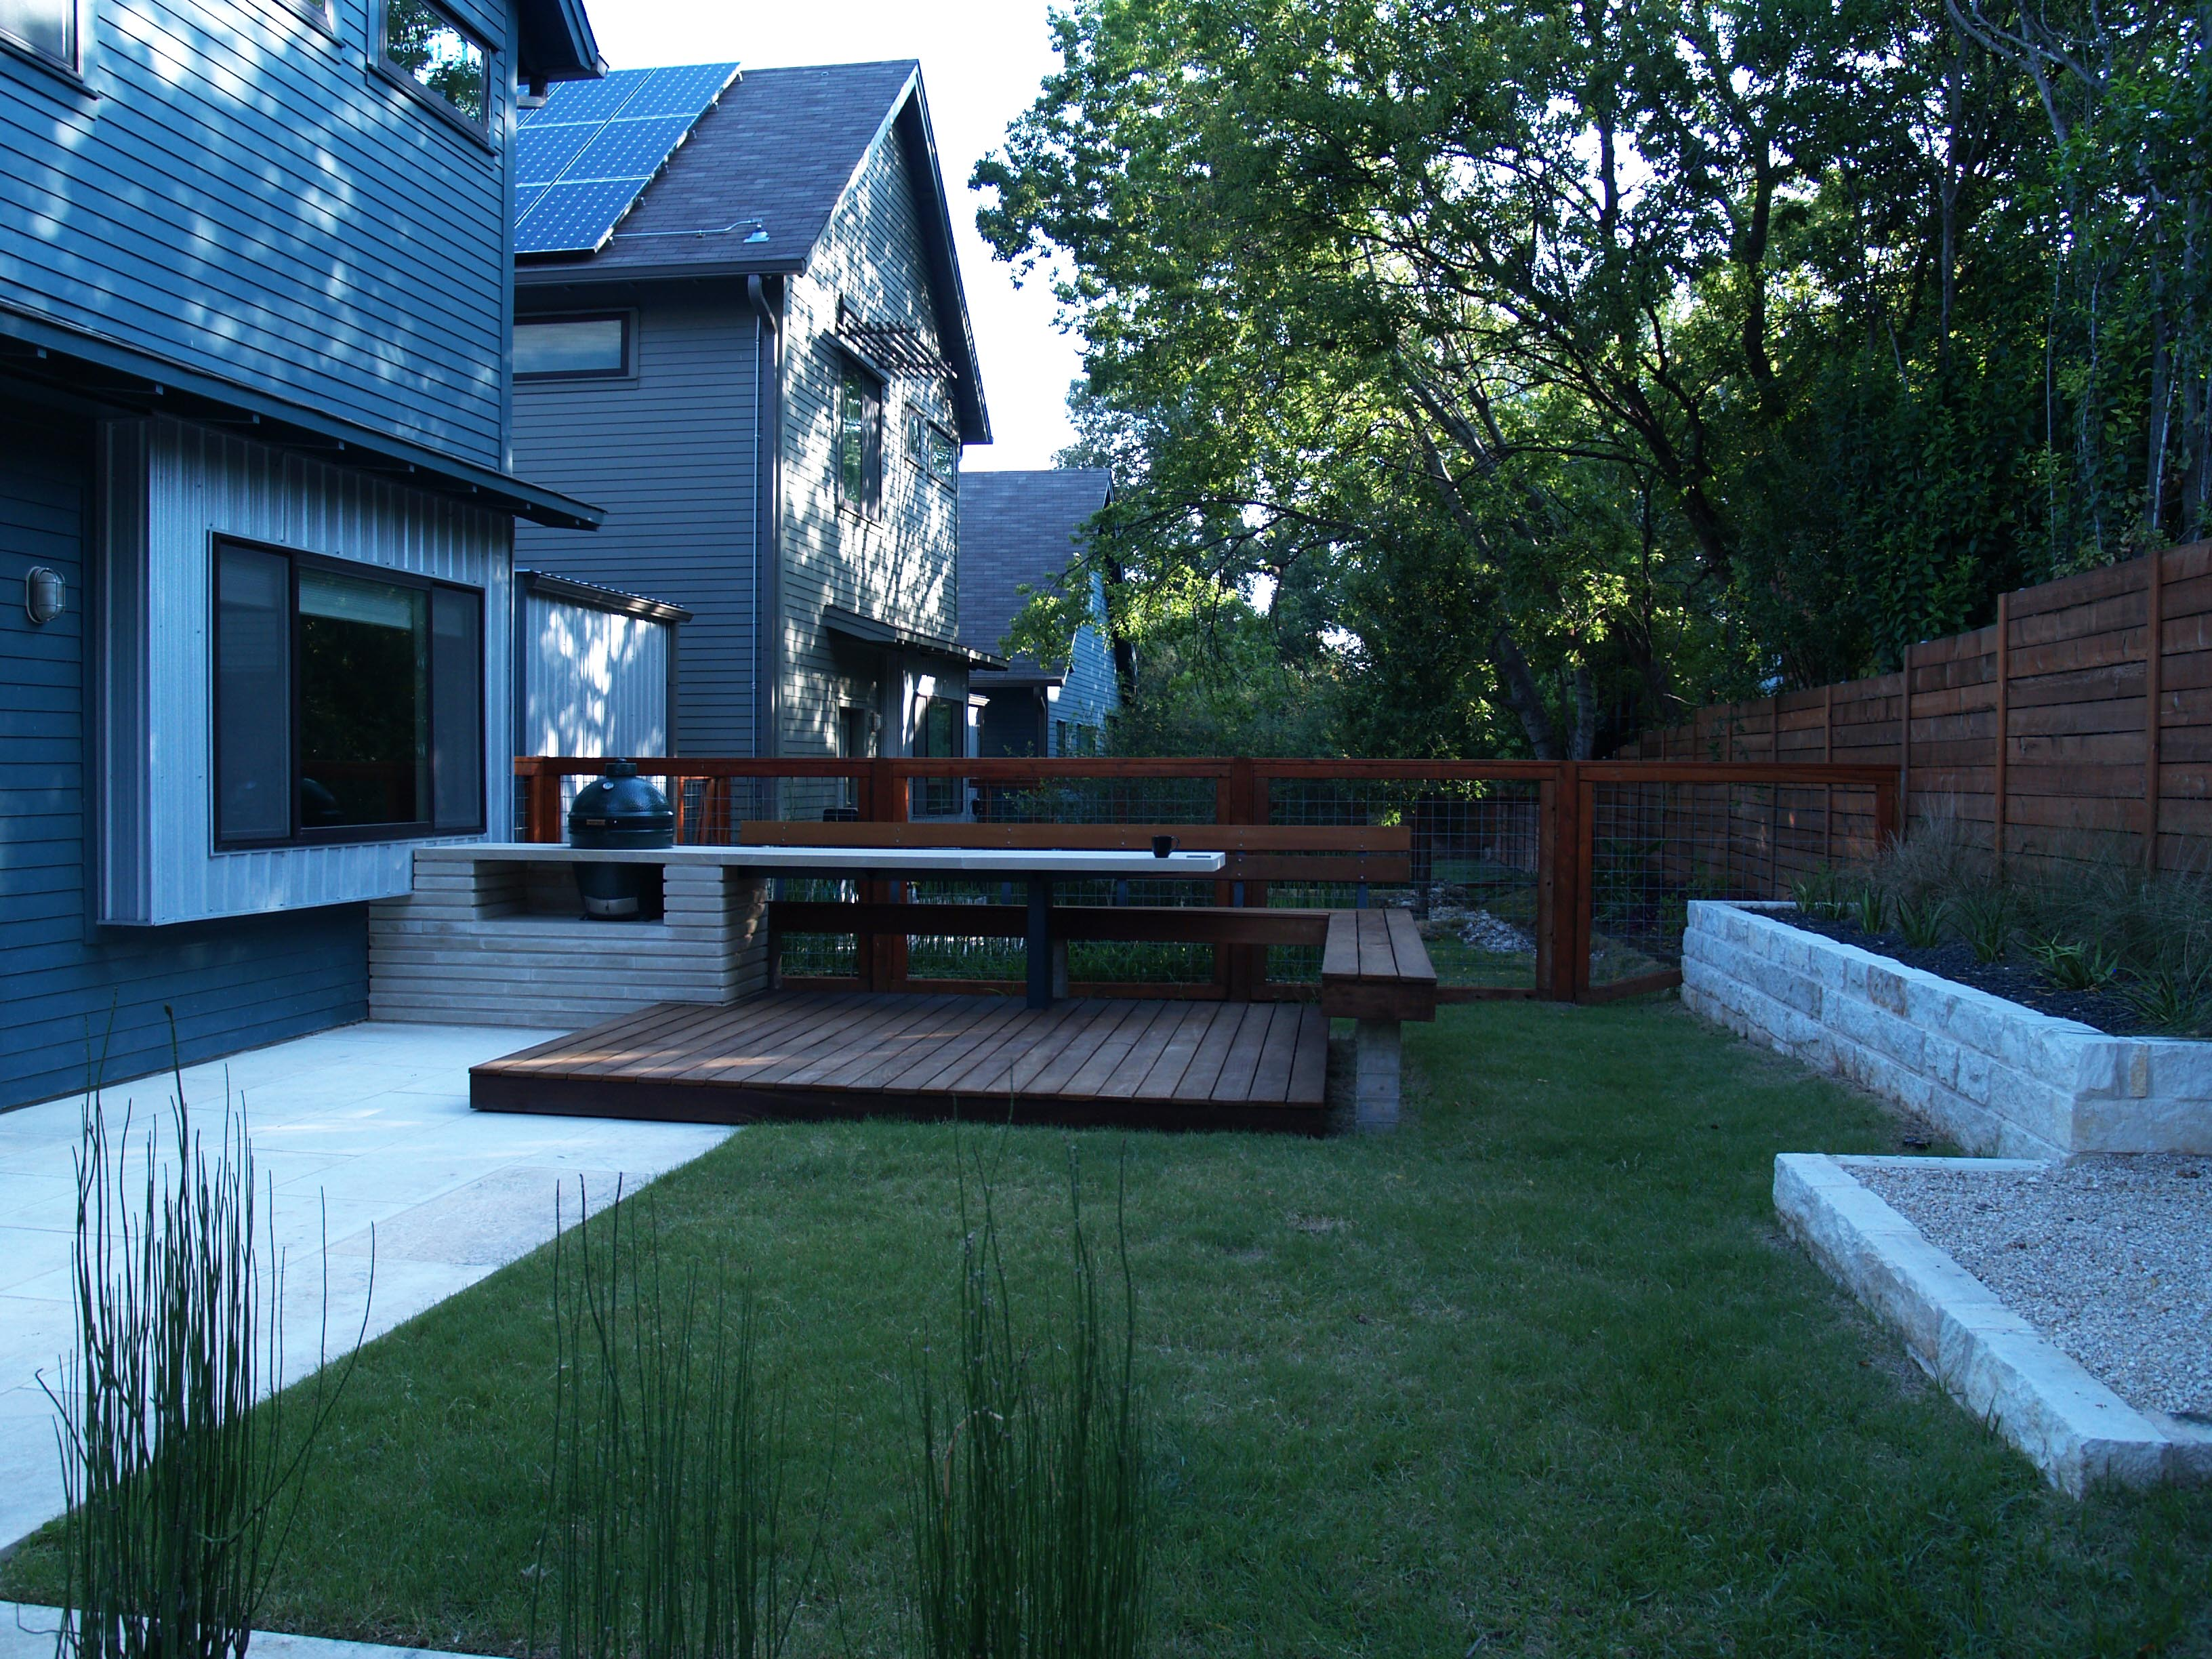 Camera Exterieur Voisin Modern Lueders Limestone Kitchen And Ipe Deck With